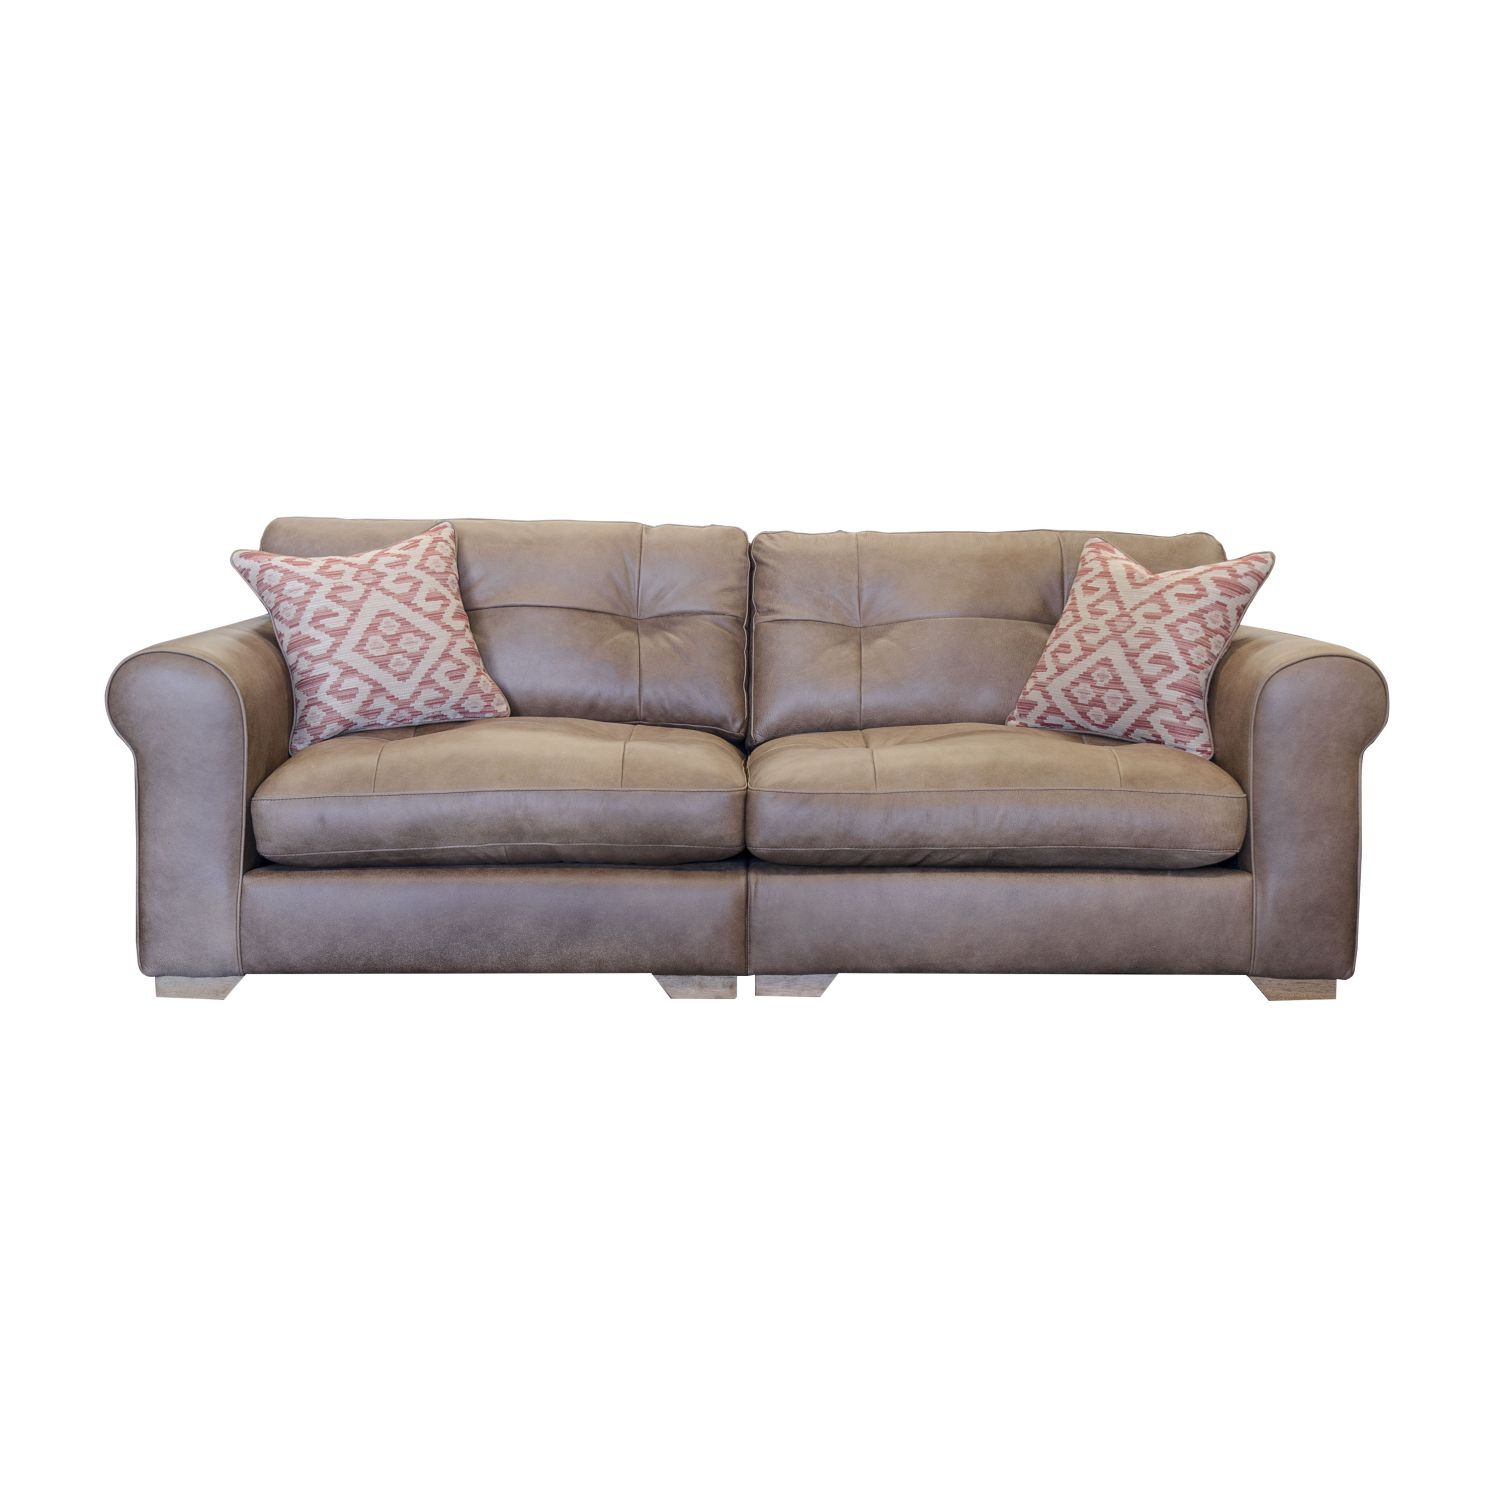 Image of Alexander & James Pemberley Maxi Split Leather Sofa